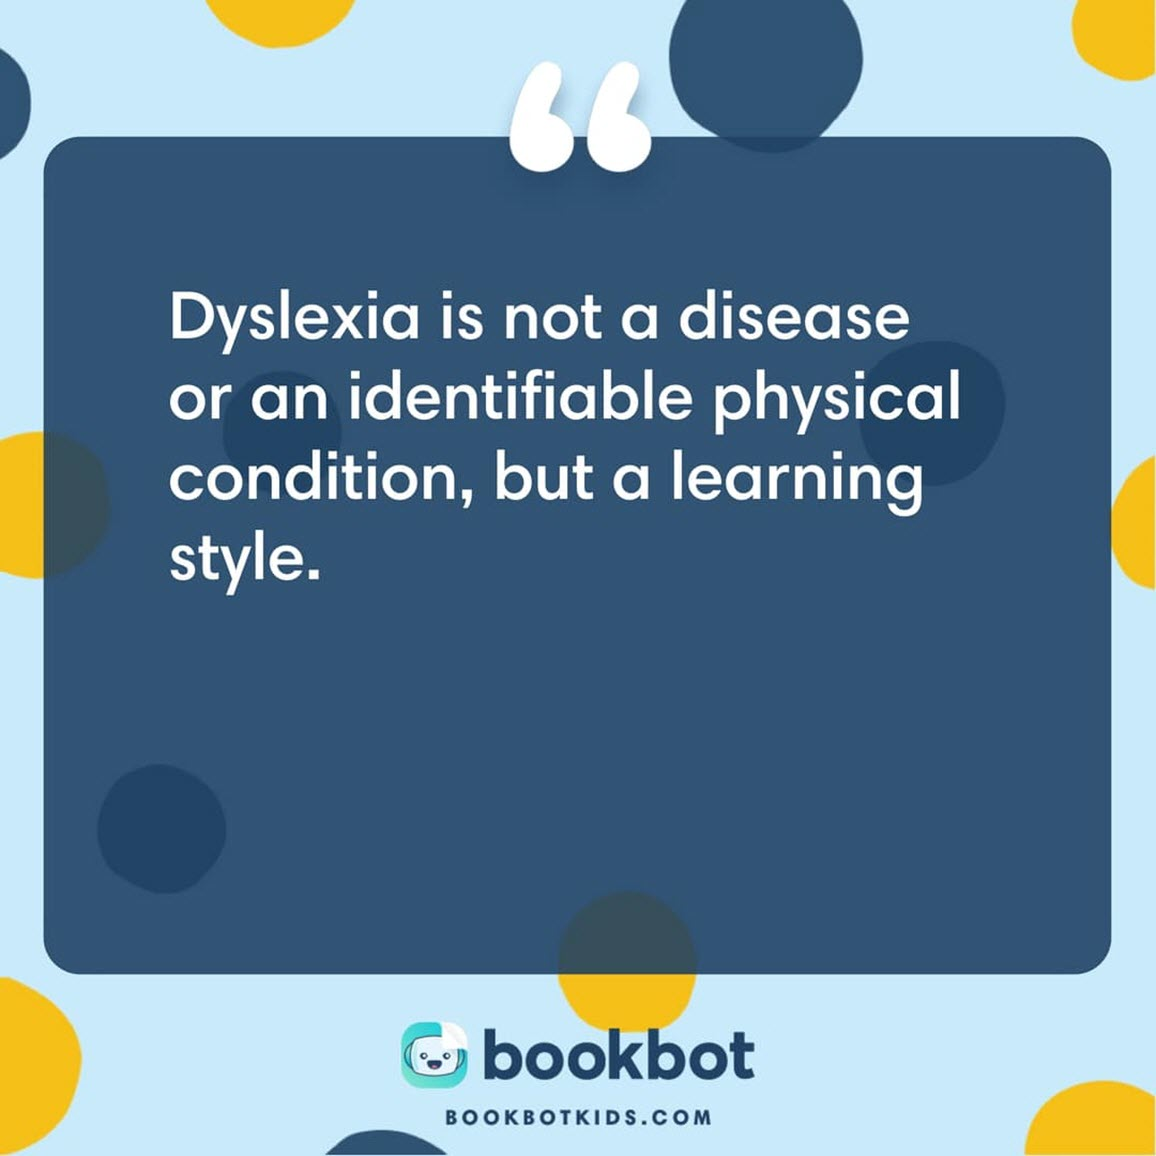 Dyslexia is not a disease or an identifiable physical condition, but a learning style.